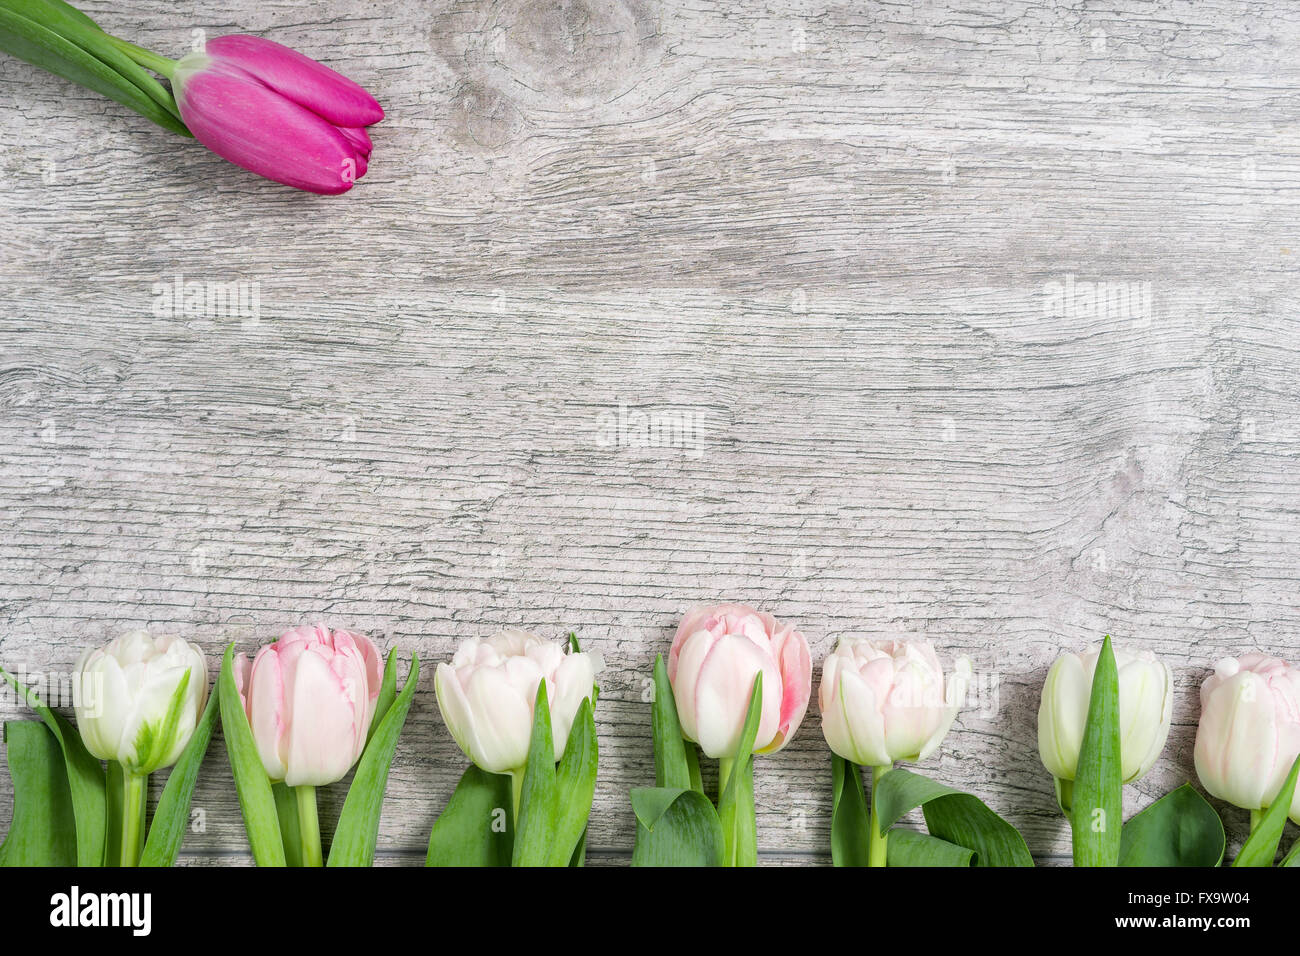 White Tulips in a Row and a pink One Stock Photo